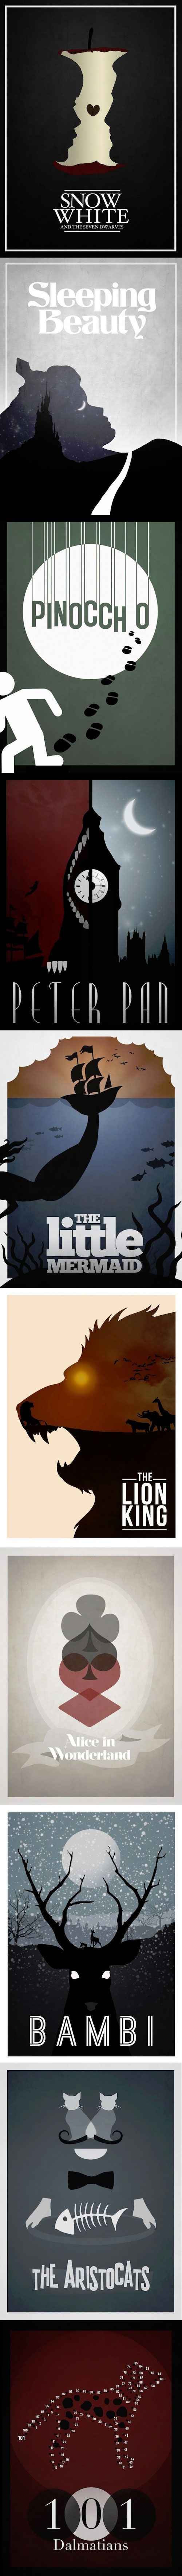 DISNEY MOVIE POSTERS RE-IMAGINED